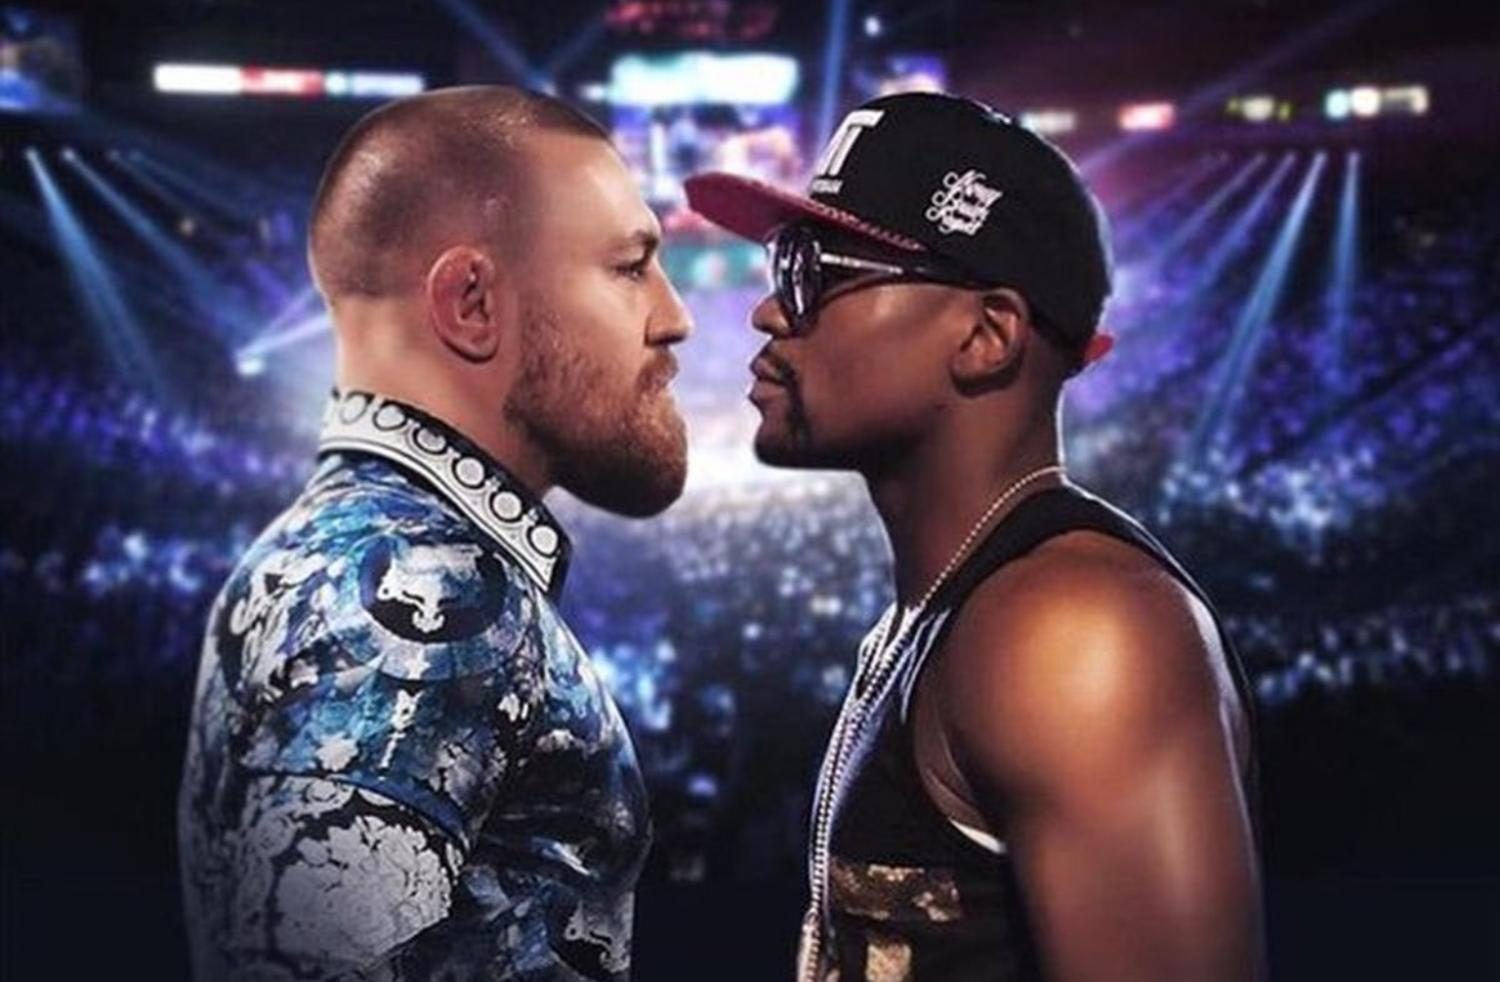 McGregor+and+Mayweather+stare+each+other+down+preparing+for+the+fight+%28photo+courtesy+of+SB+Nation%29.